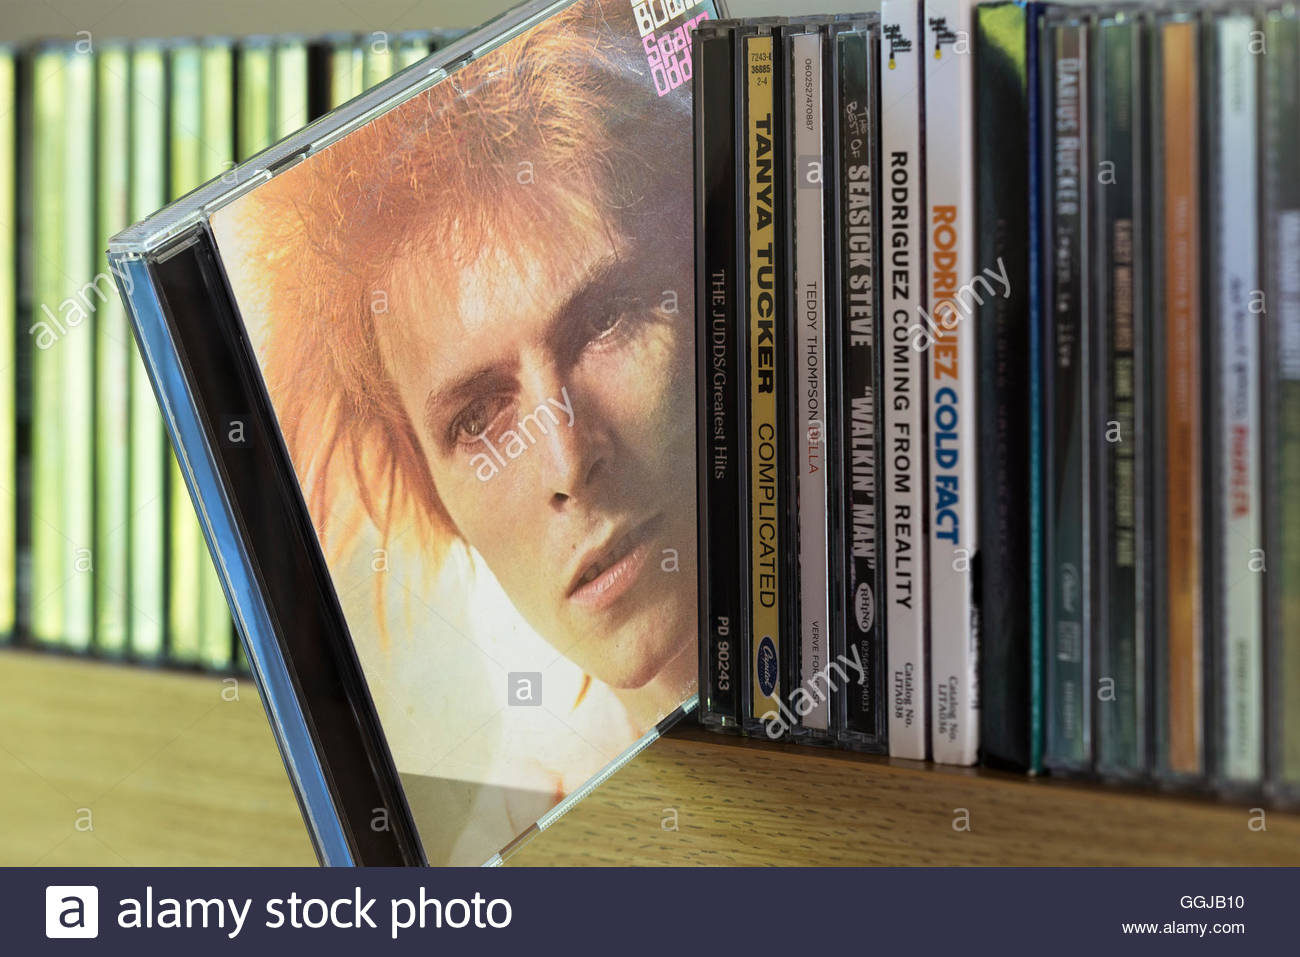 Space Oddity, 1969 David Bowie CD pulled out from among other CD's on a shelf - Stock Image